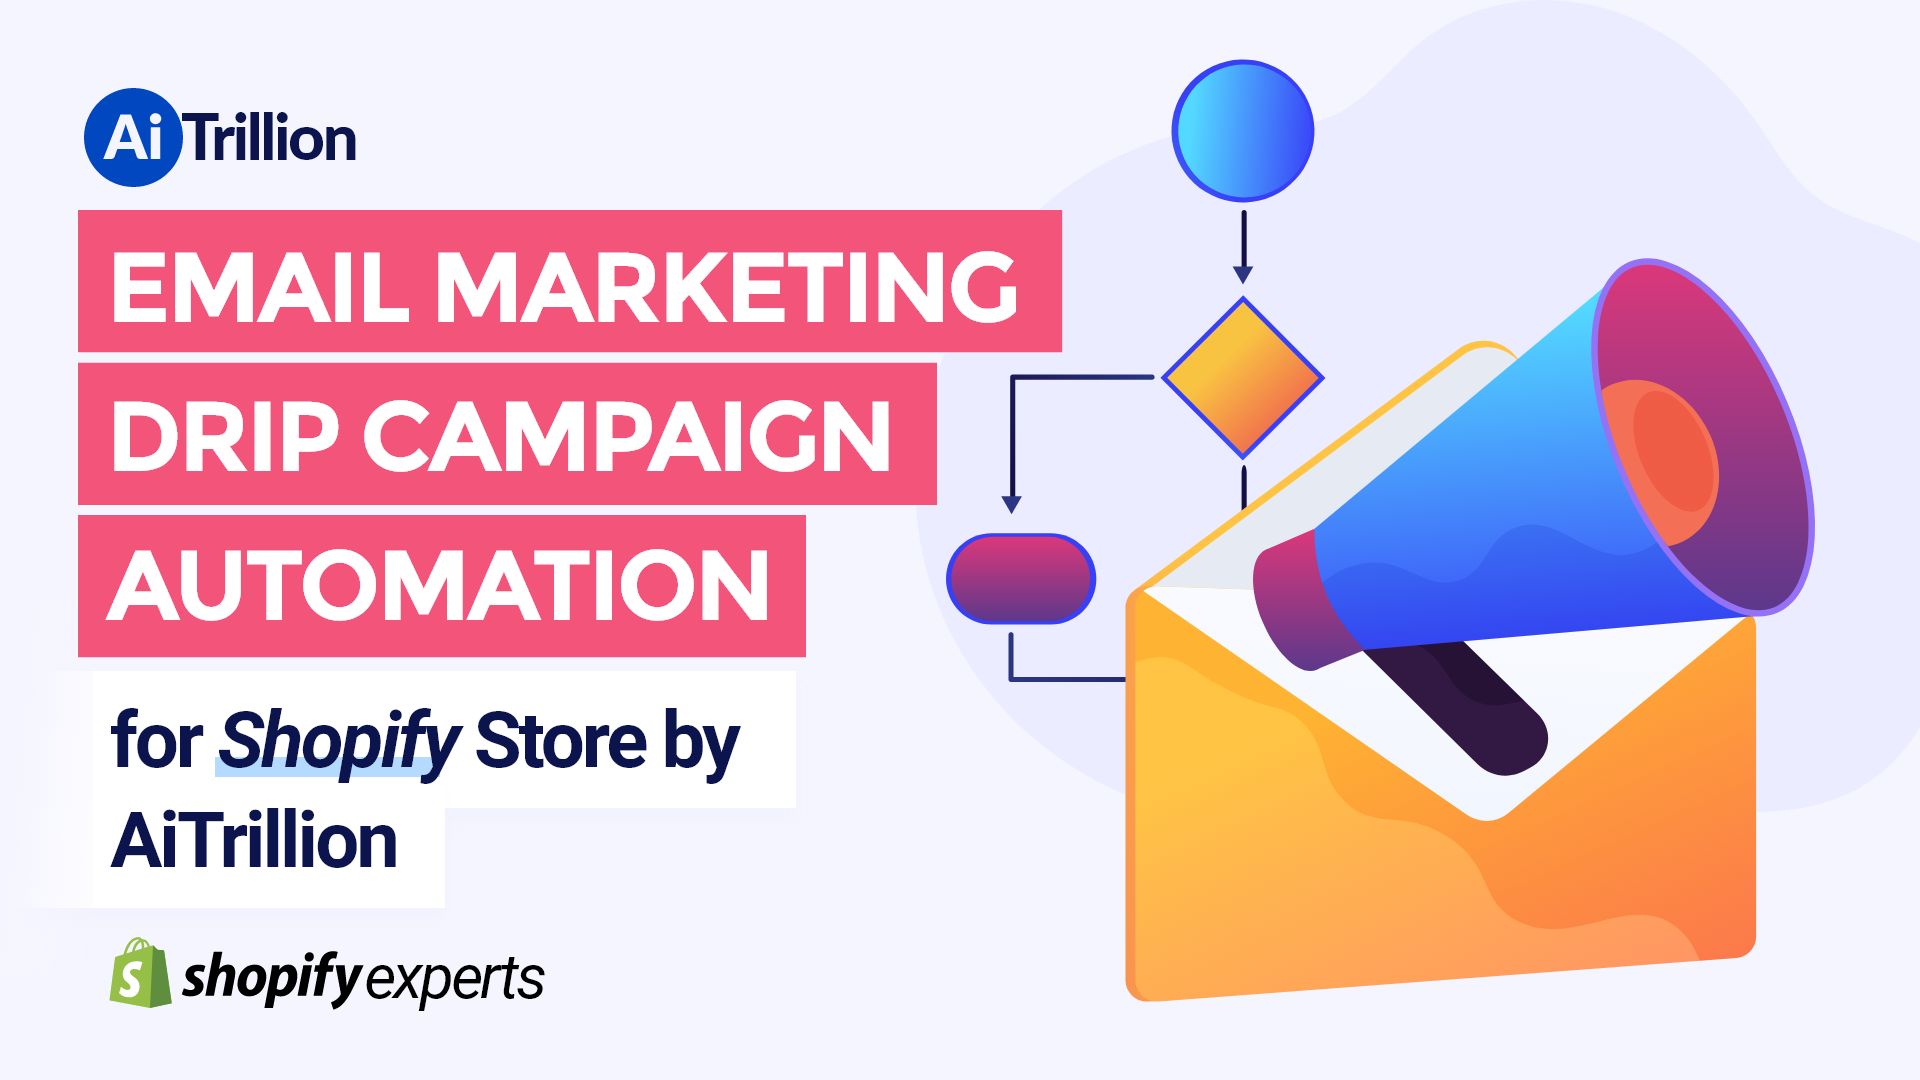 Email Marketing Drip Campaign Automation - AiTrillion